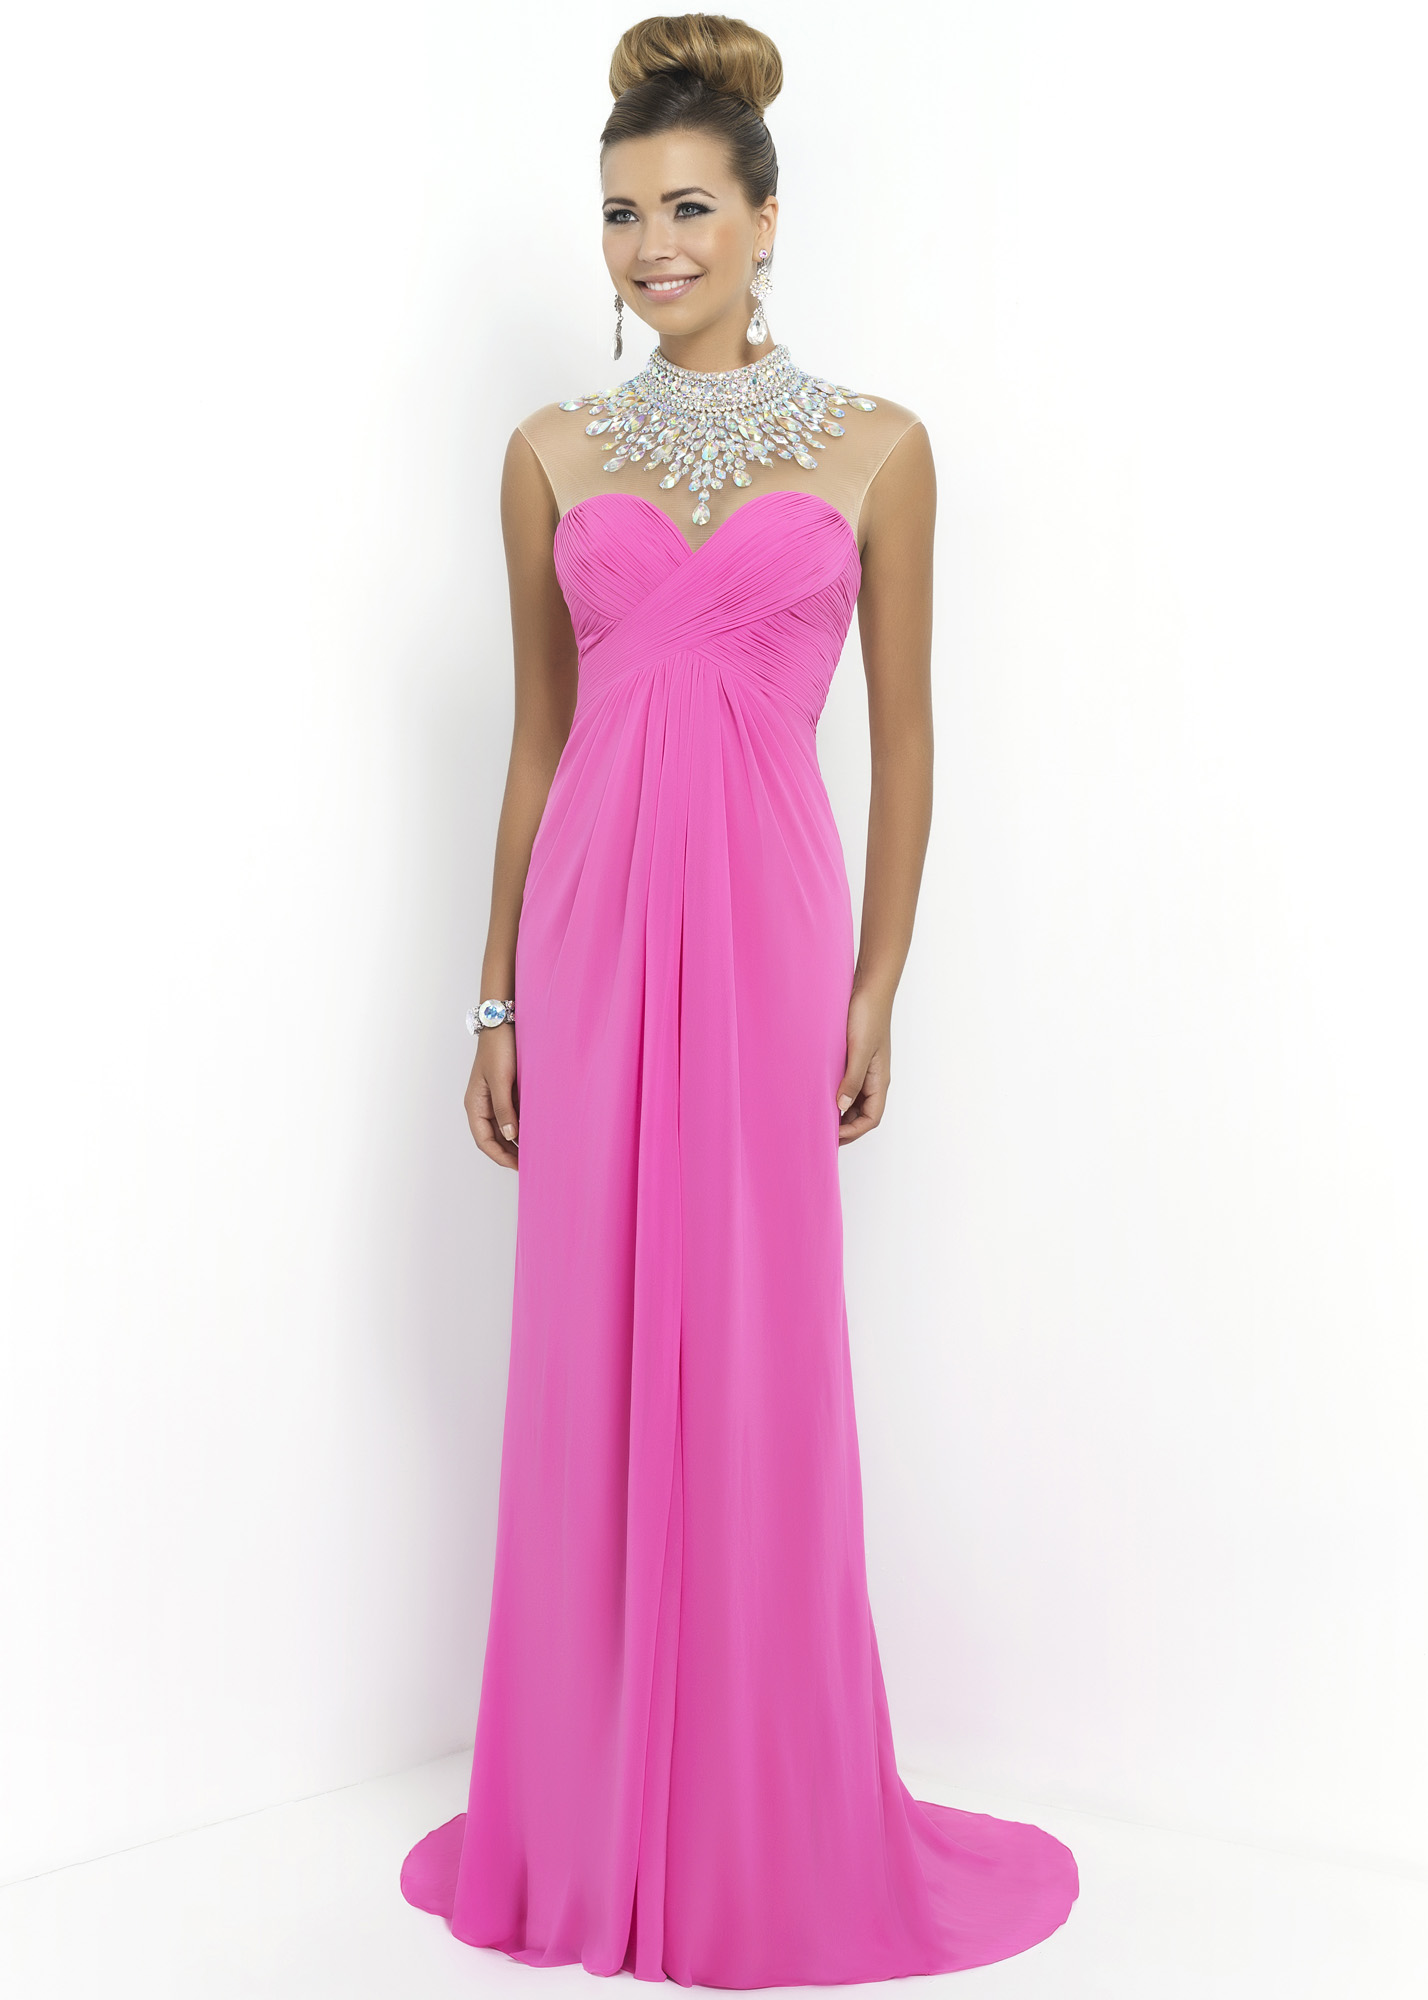 Blush 9952 - Petunia Beaded Illusion Chiffon Prom Gown - RissyRoos.com